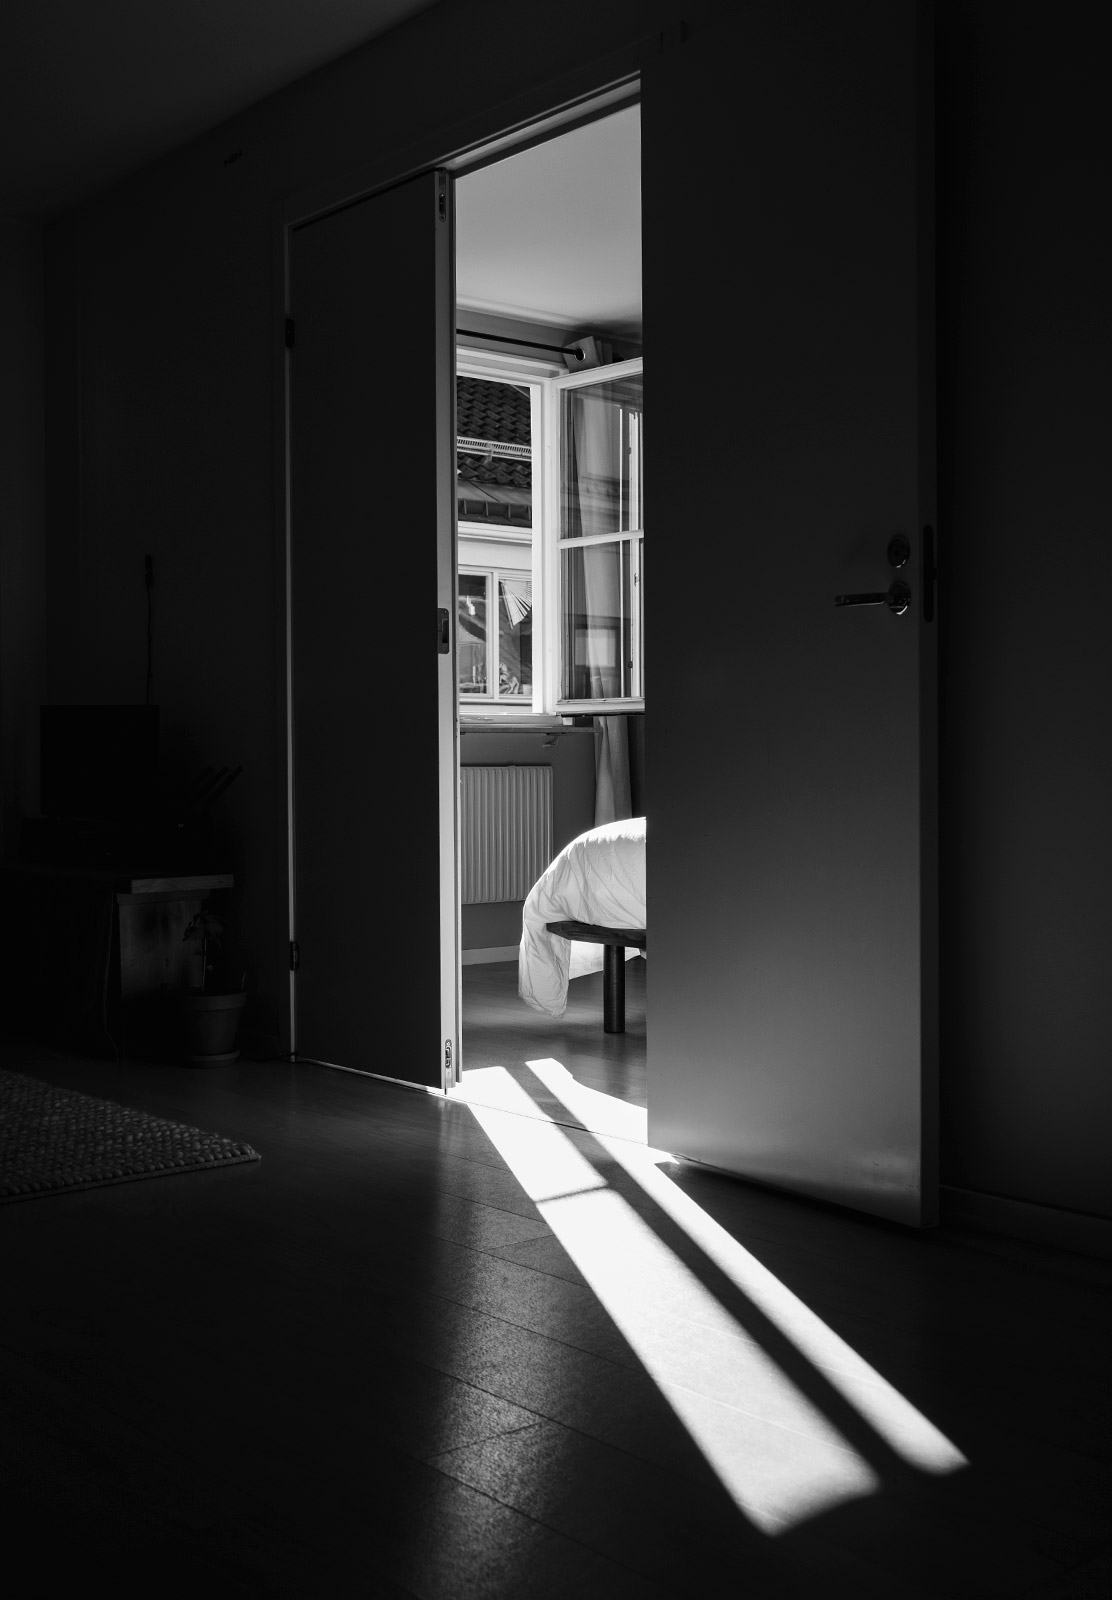 Light on floor